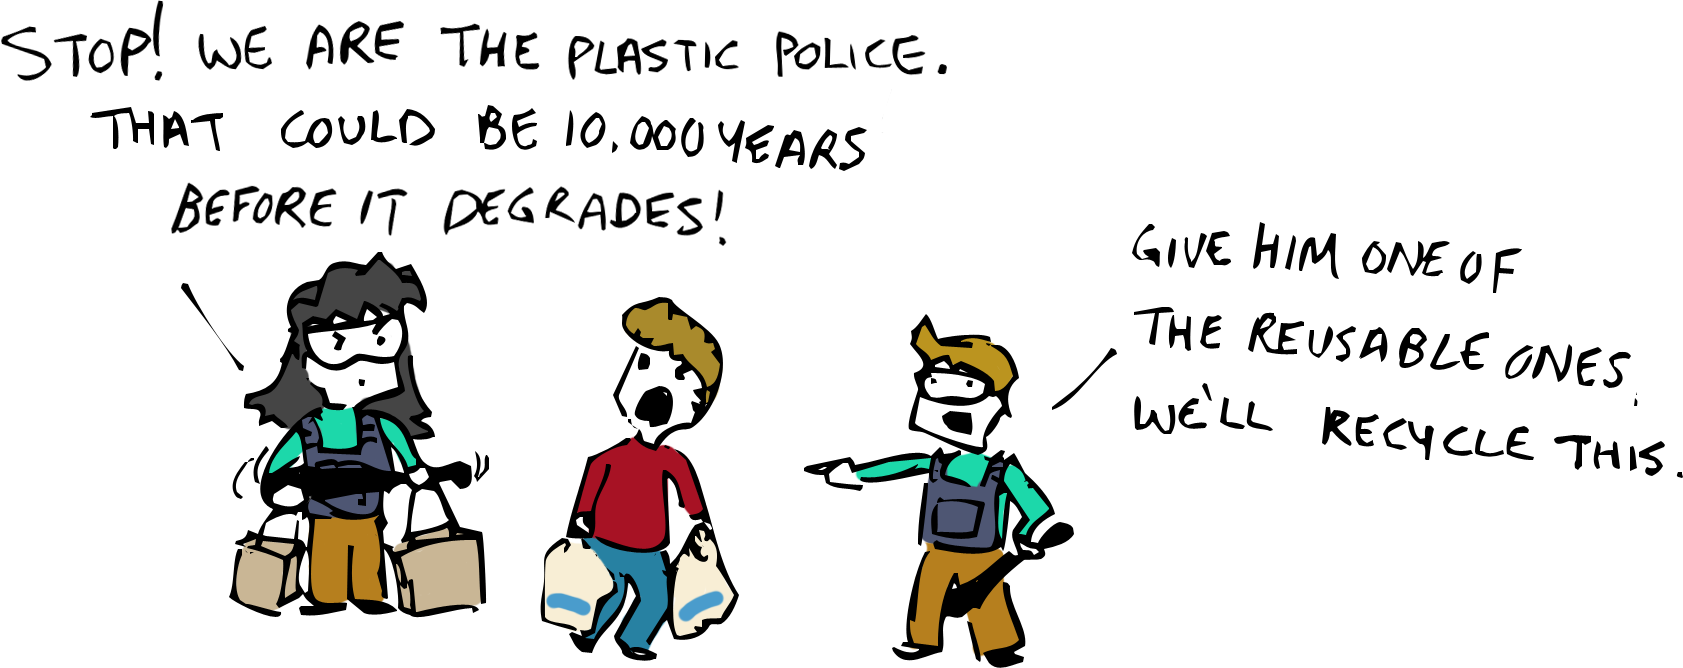 6 - Plastic Police.png